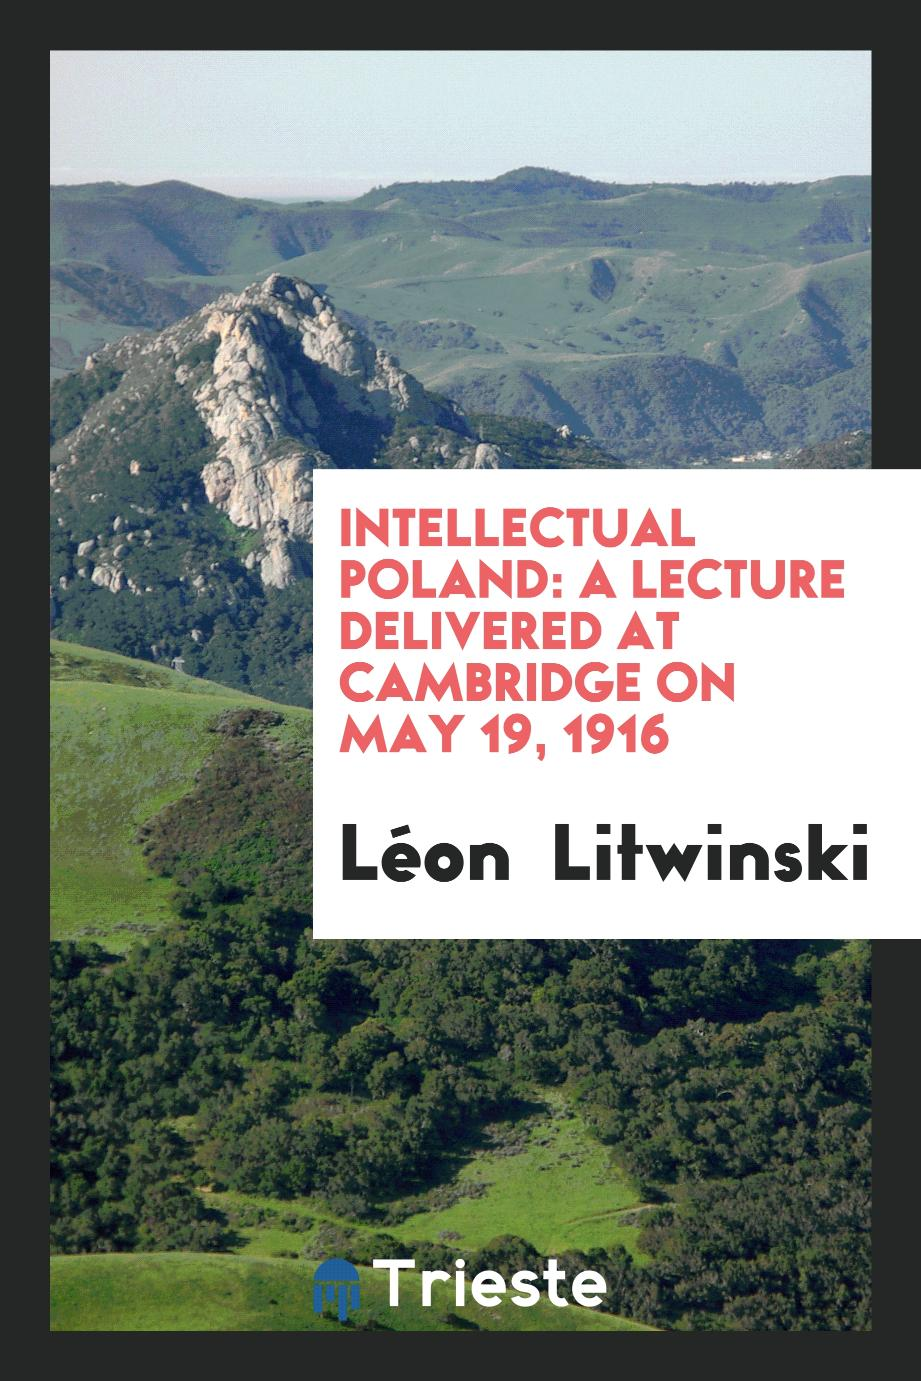 Intellectual Poland: A Lecture Delivered at Cambridge on May 19, 1916